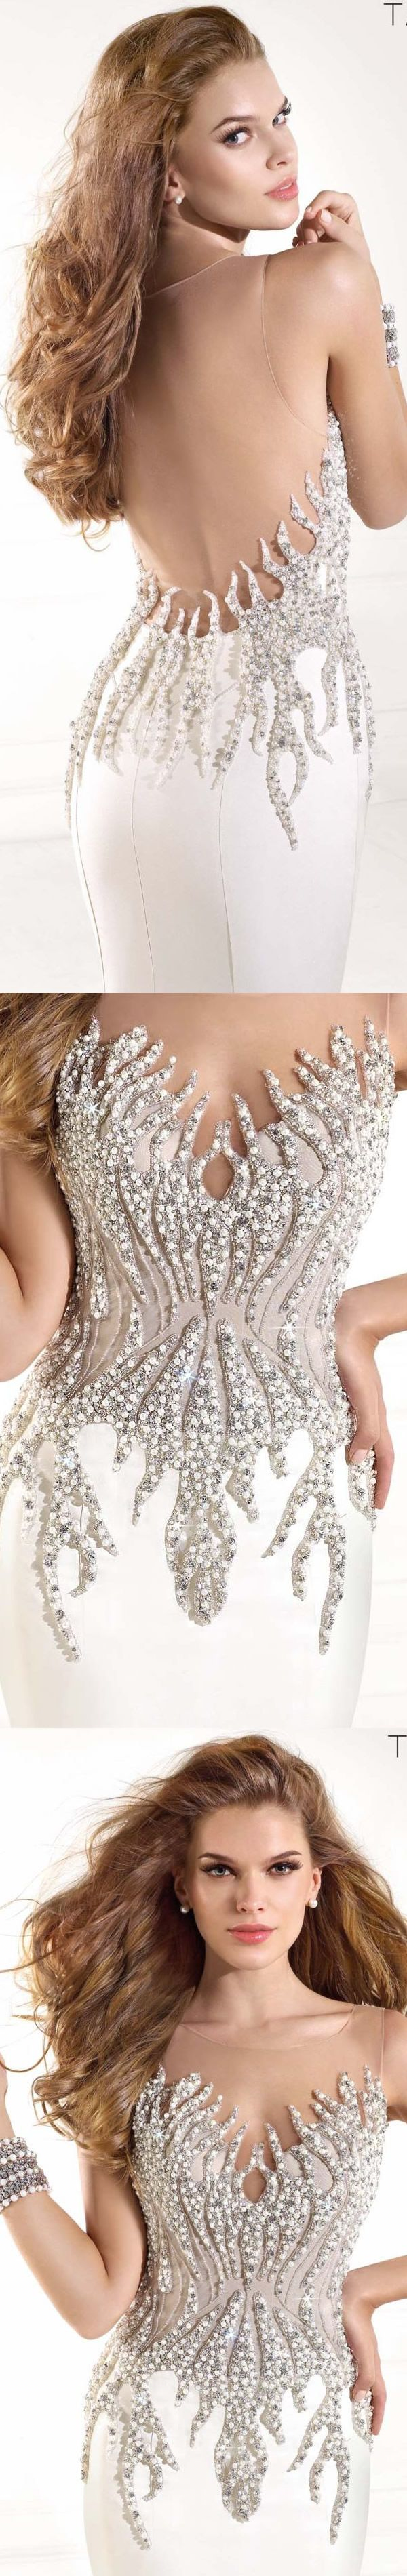 DIYouth Actual Images Luxury Scoop Crystal Prom Dresses Mermaid Satin Long Evening Gowns Formal Pageant Gowns beading prom dress,beaded evening dress,long prom dresses,long evening dresses,open back prom dresses, backless evening dresses, party dresses,Mermaid prom dress,long prom dress